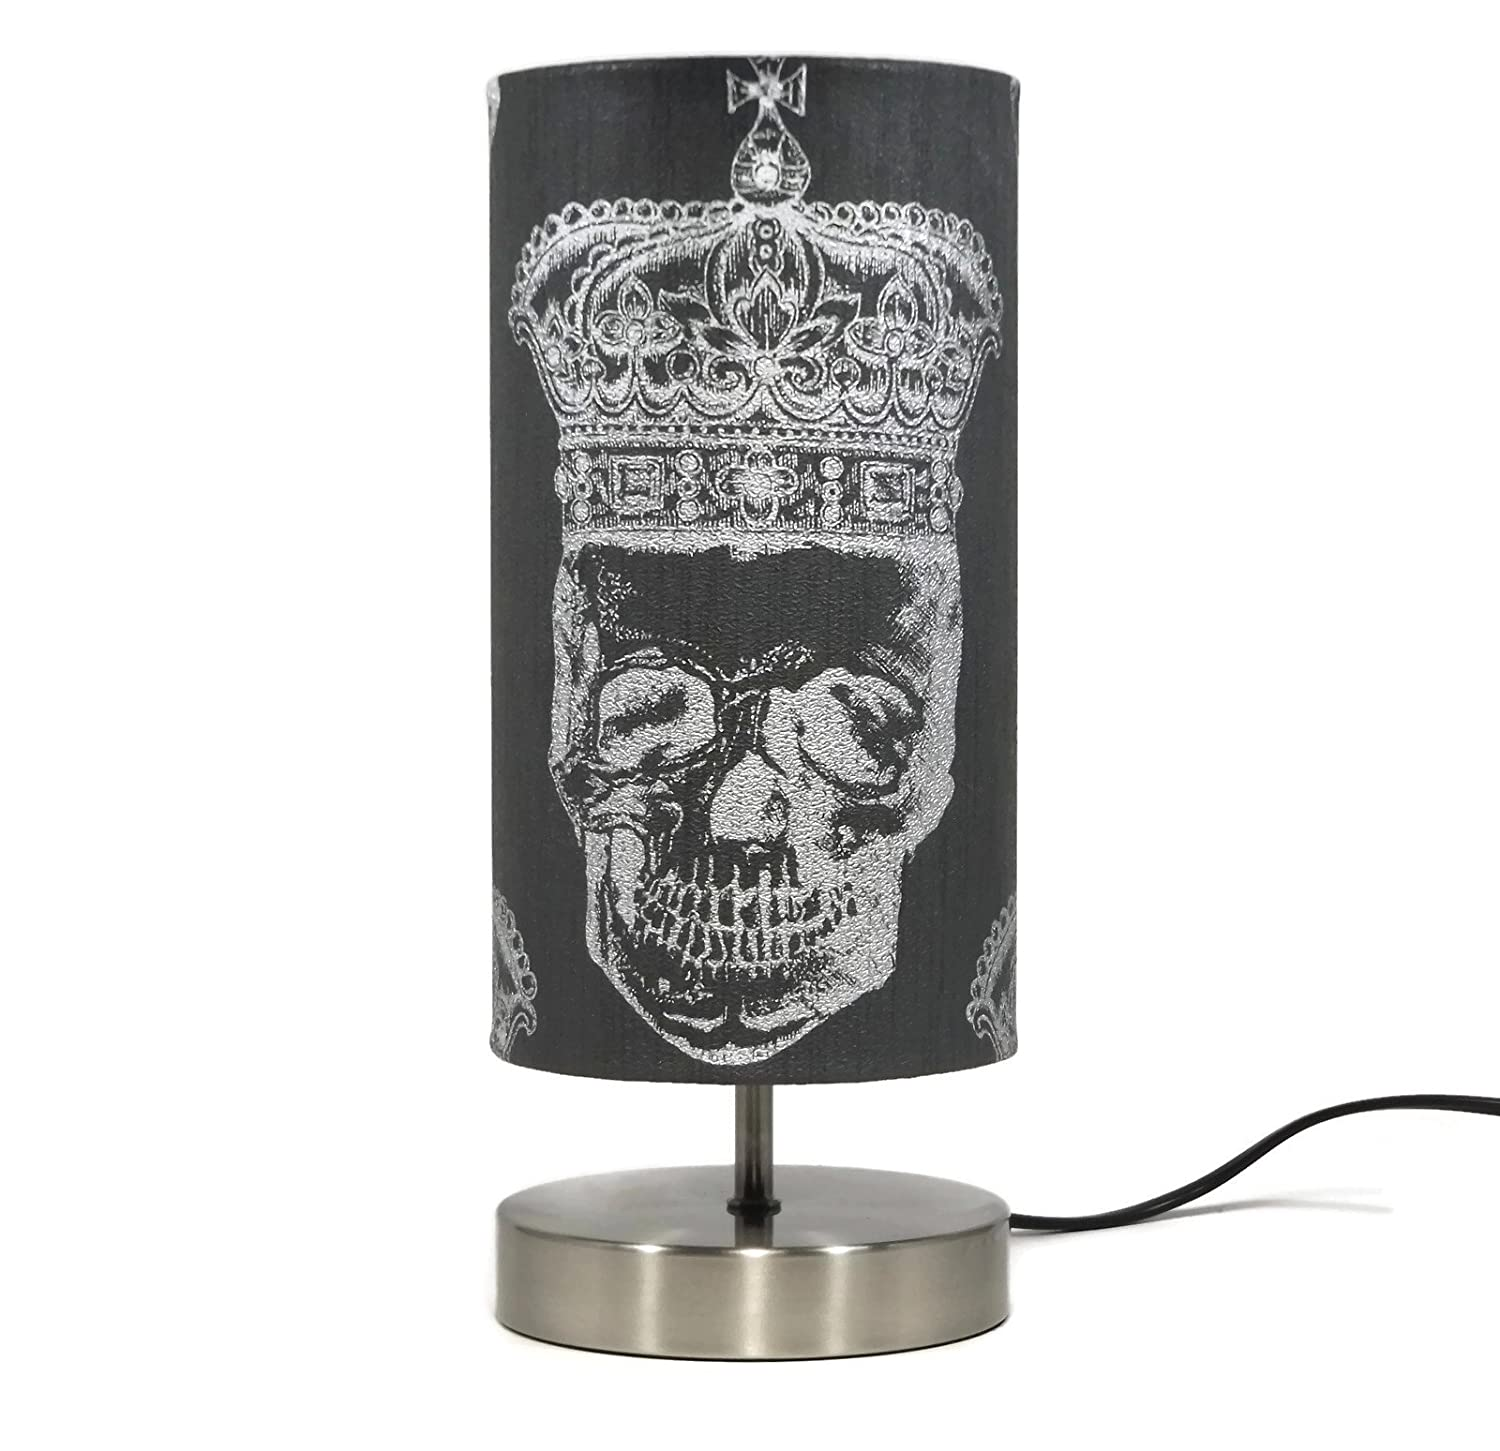 Black Skull Lamp Lampshade Night Light Girls Boys Teens Bedroom Bedside Table Lamps Accessories Gifts Silver Crown Sugar Skulls Room Decor Gifts